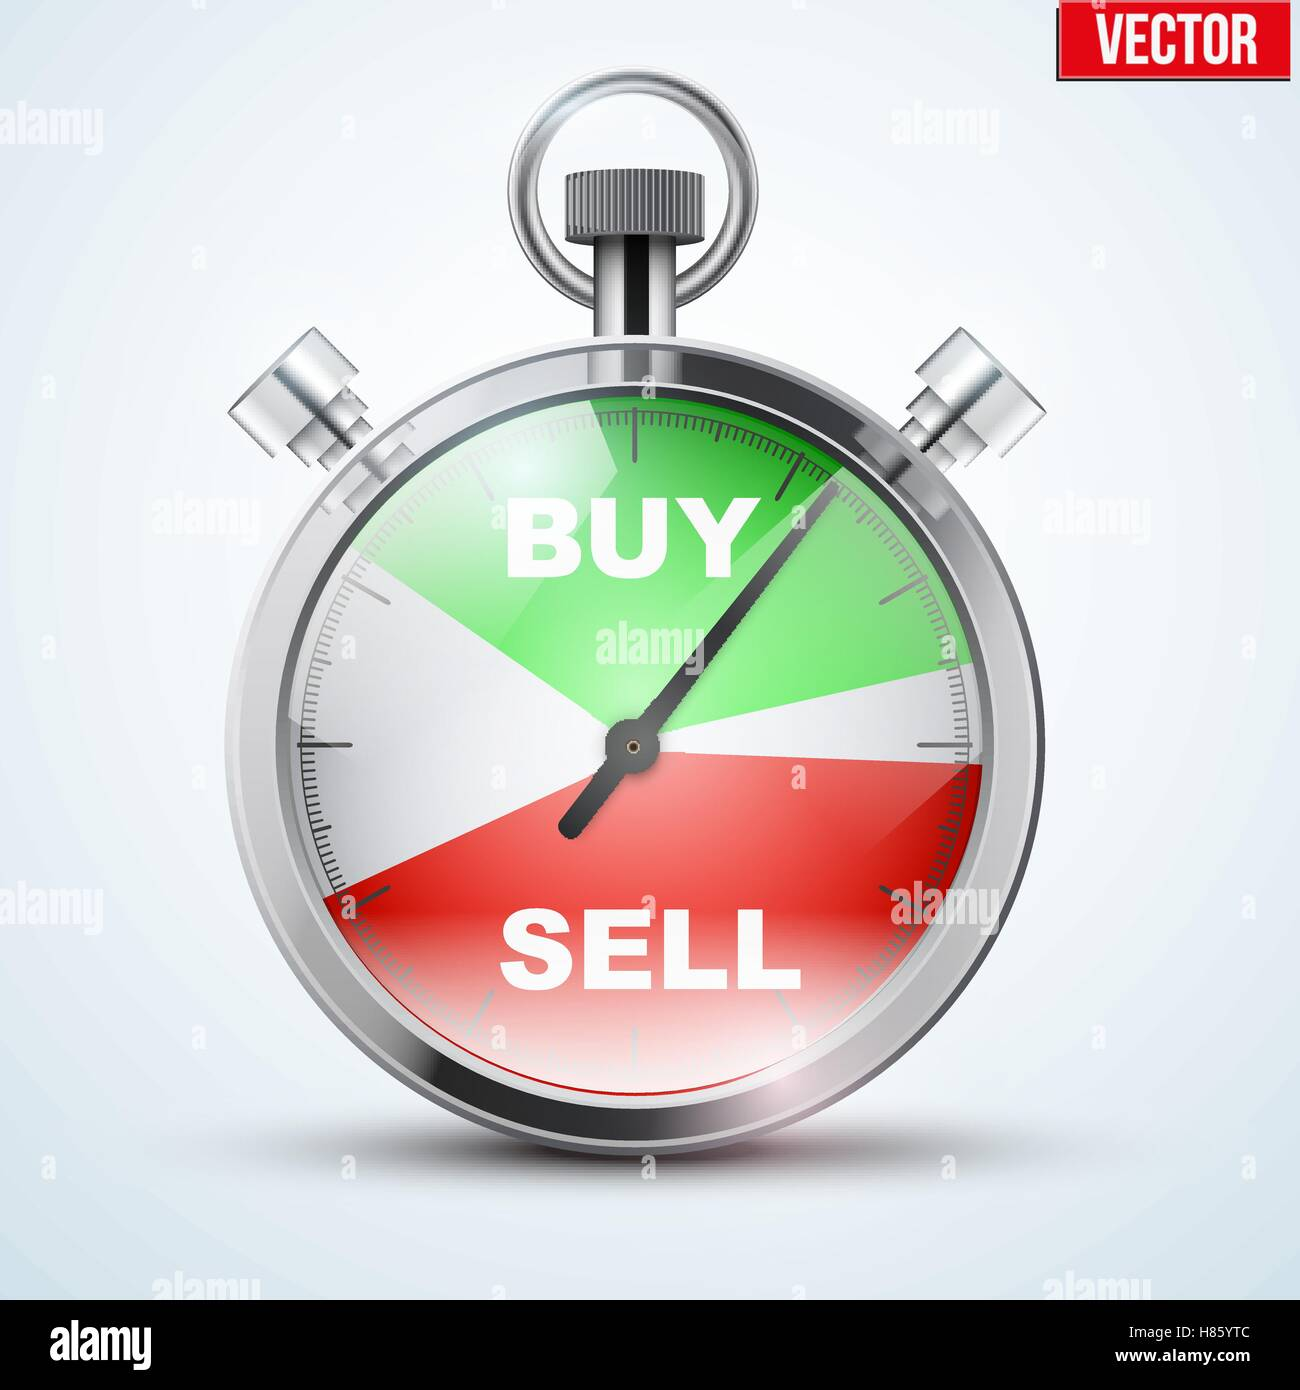 Stopwatch for forex trader symbol of time to trading buy or sell stopwatch for forex trader symbol of time to trading buy or sell editable vector illustration isolated on white background biocorpaavc Image collections